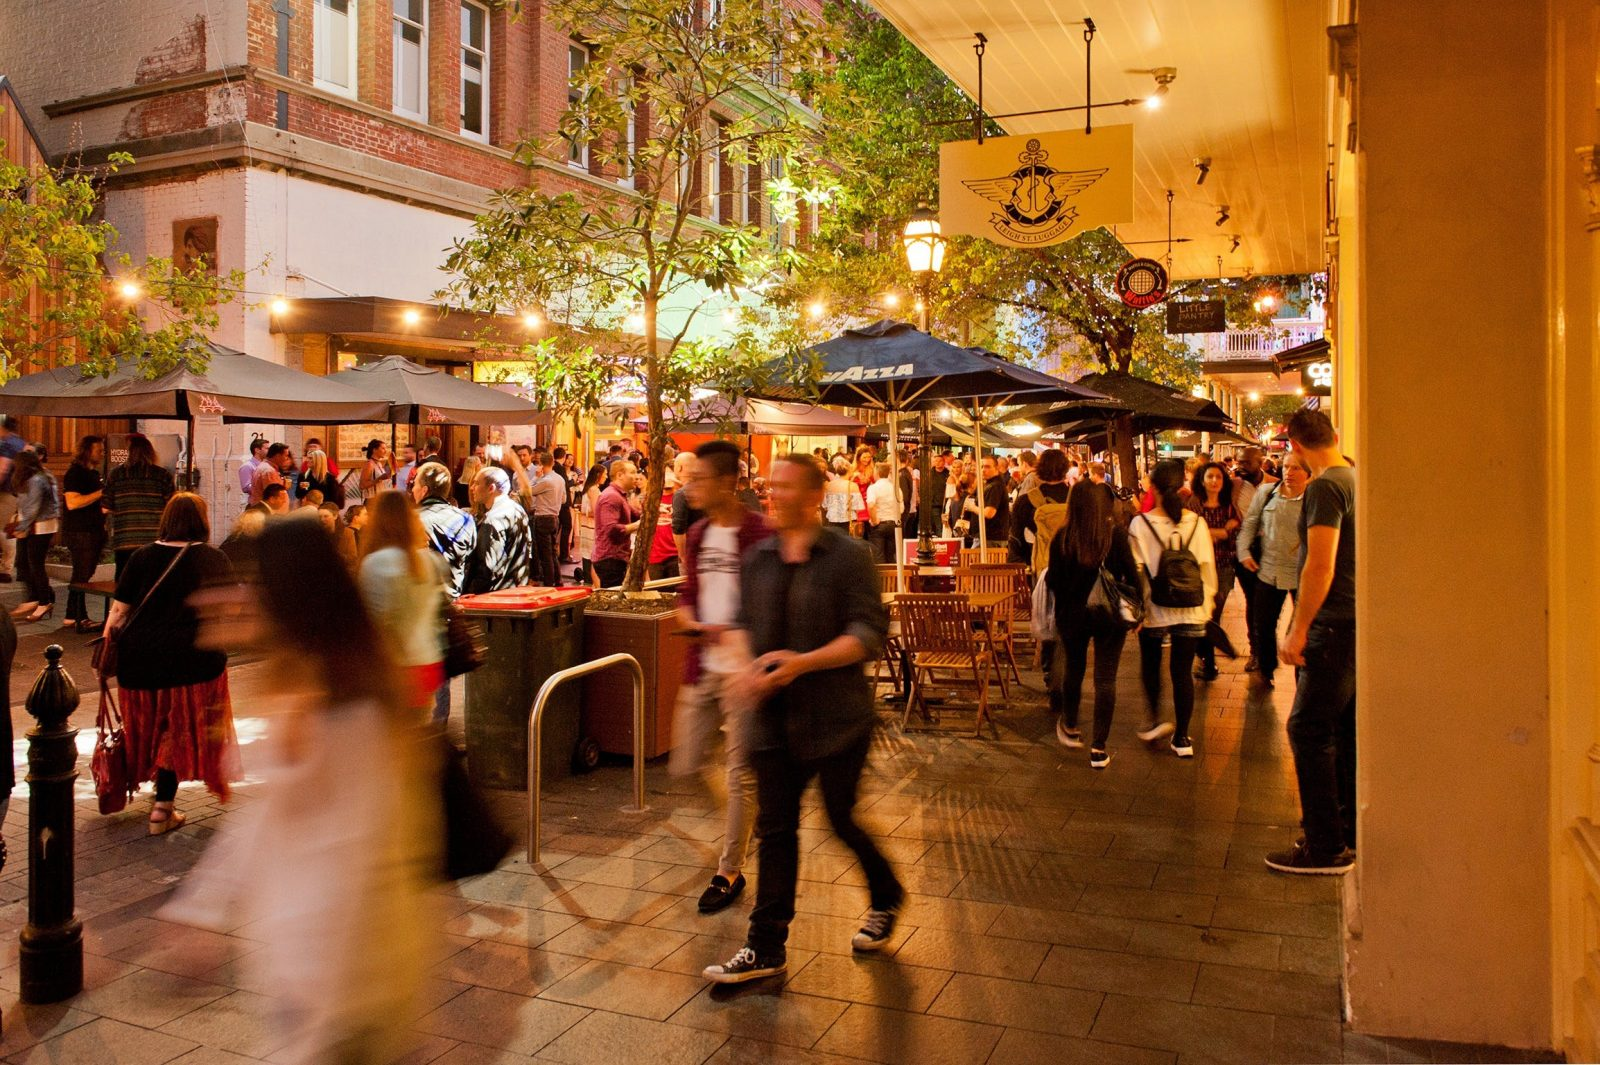 people dining and drinking festival